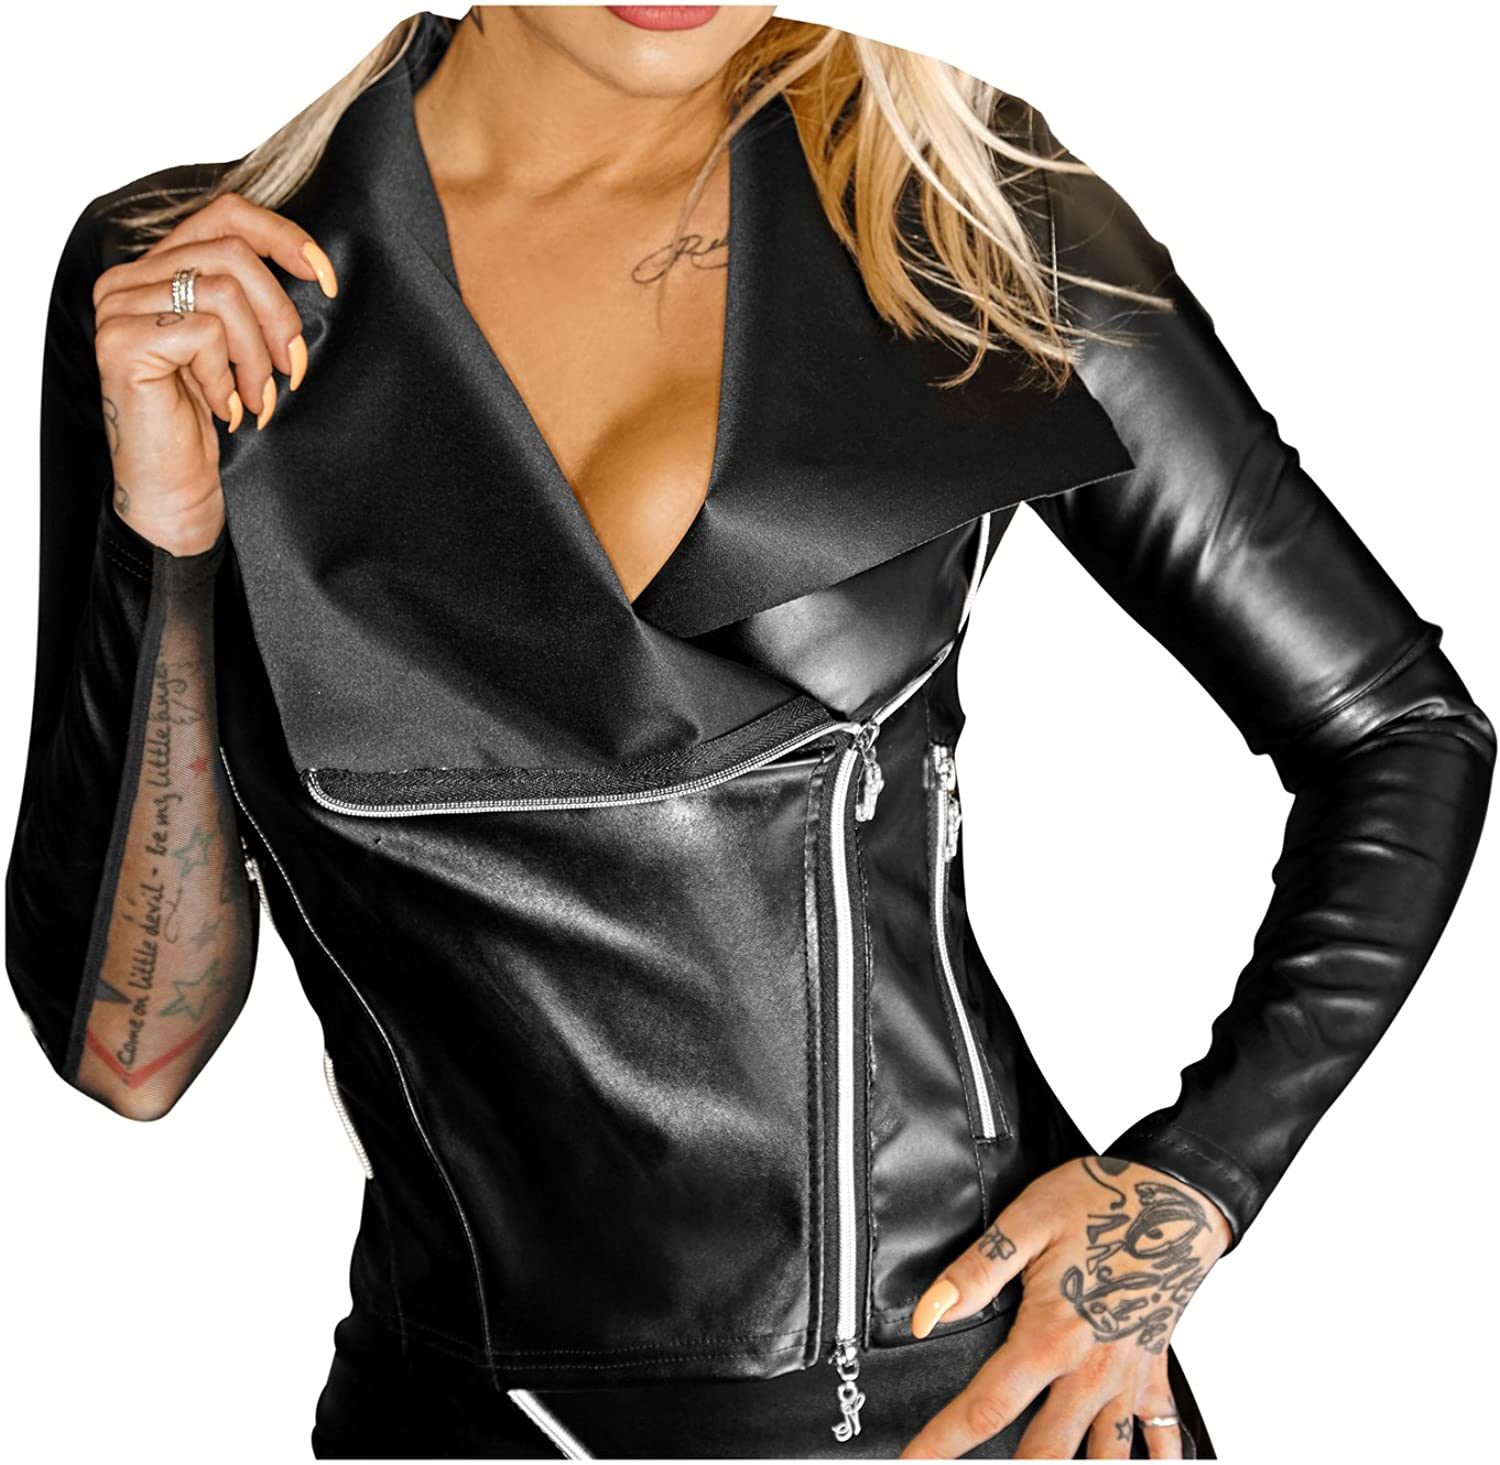 black Handmade Women's Jacket in Wetlook